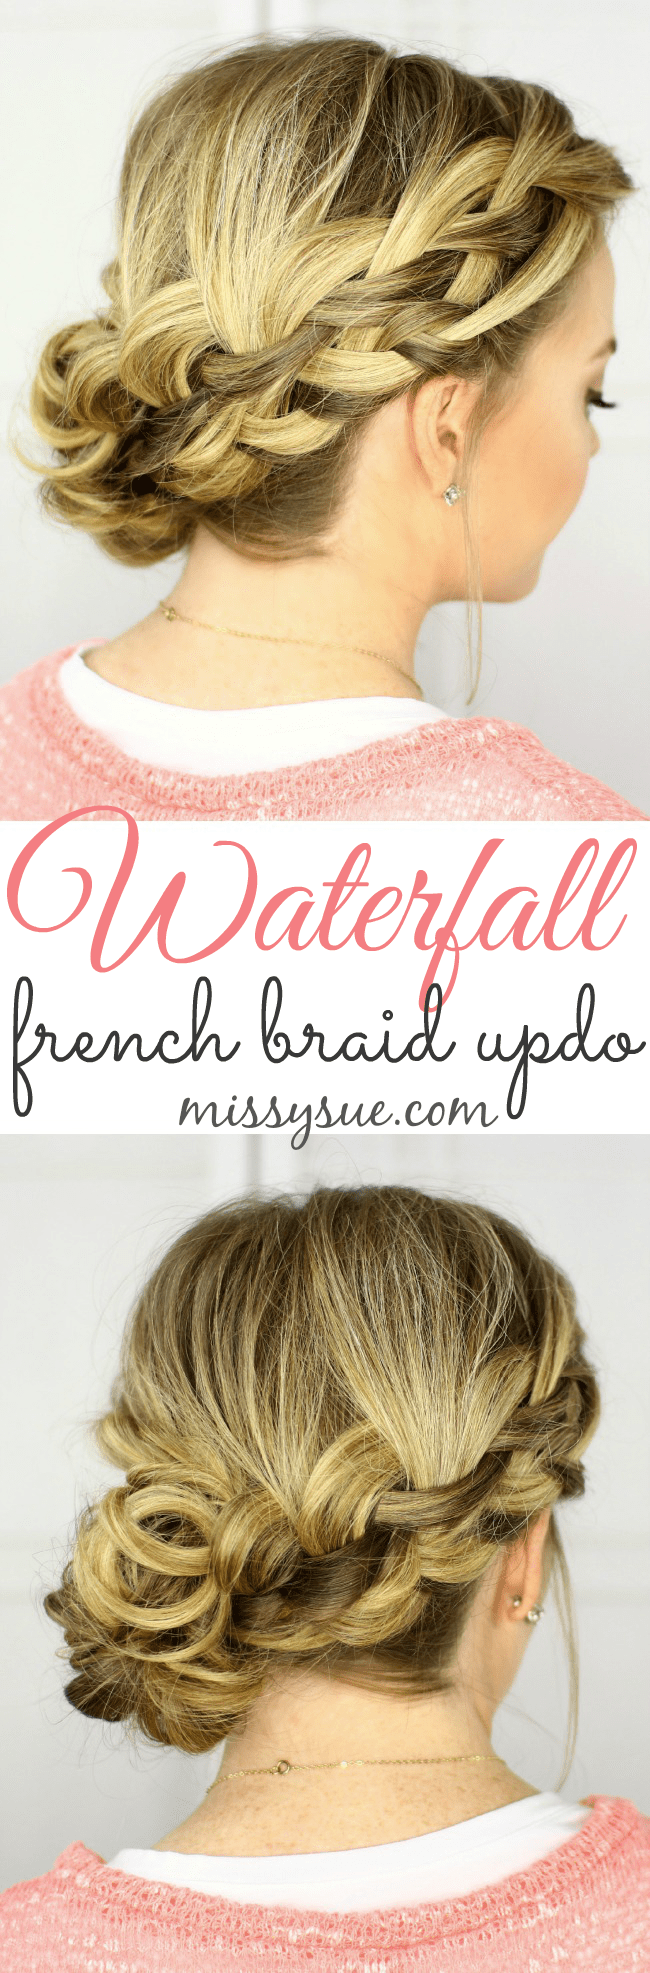 Waterfall French Braid Updo